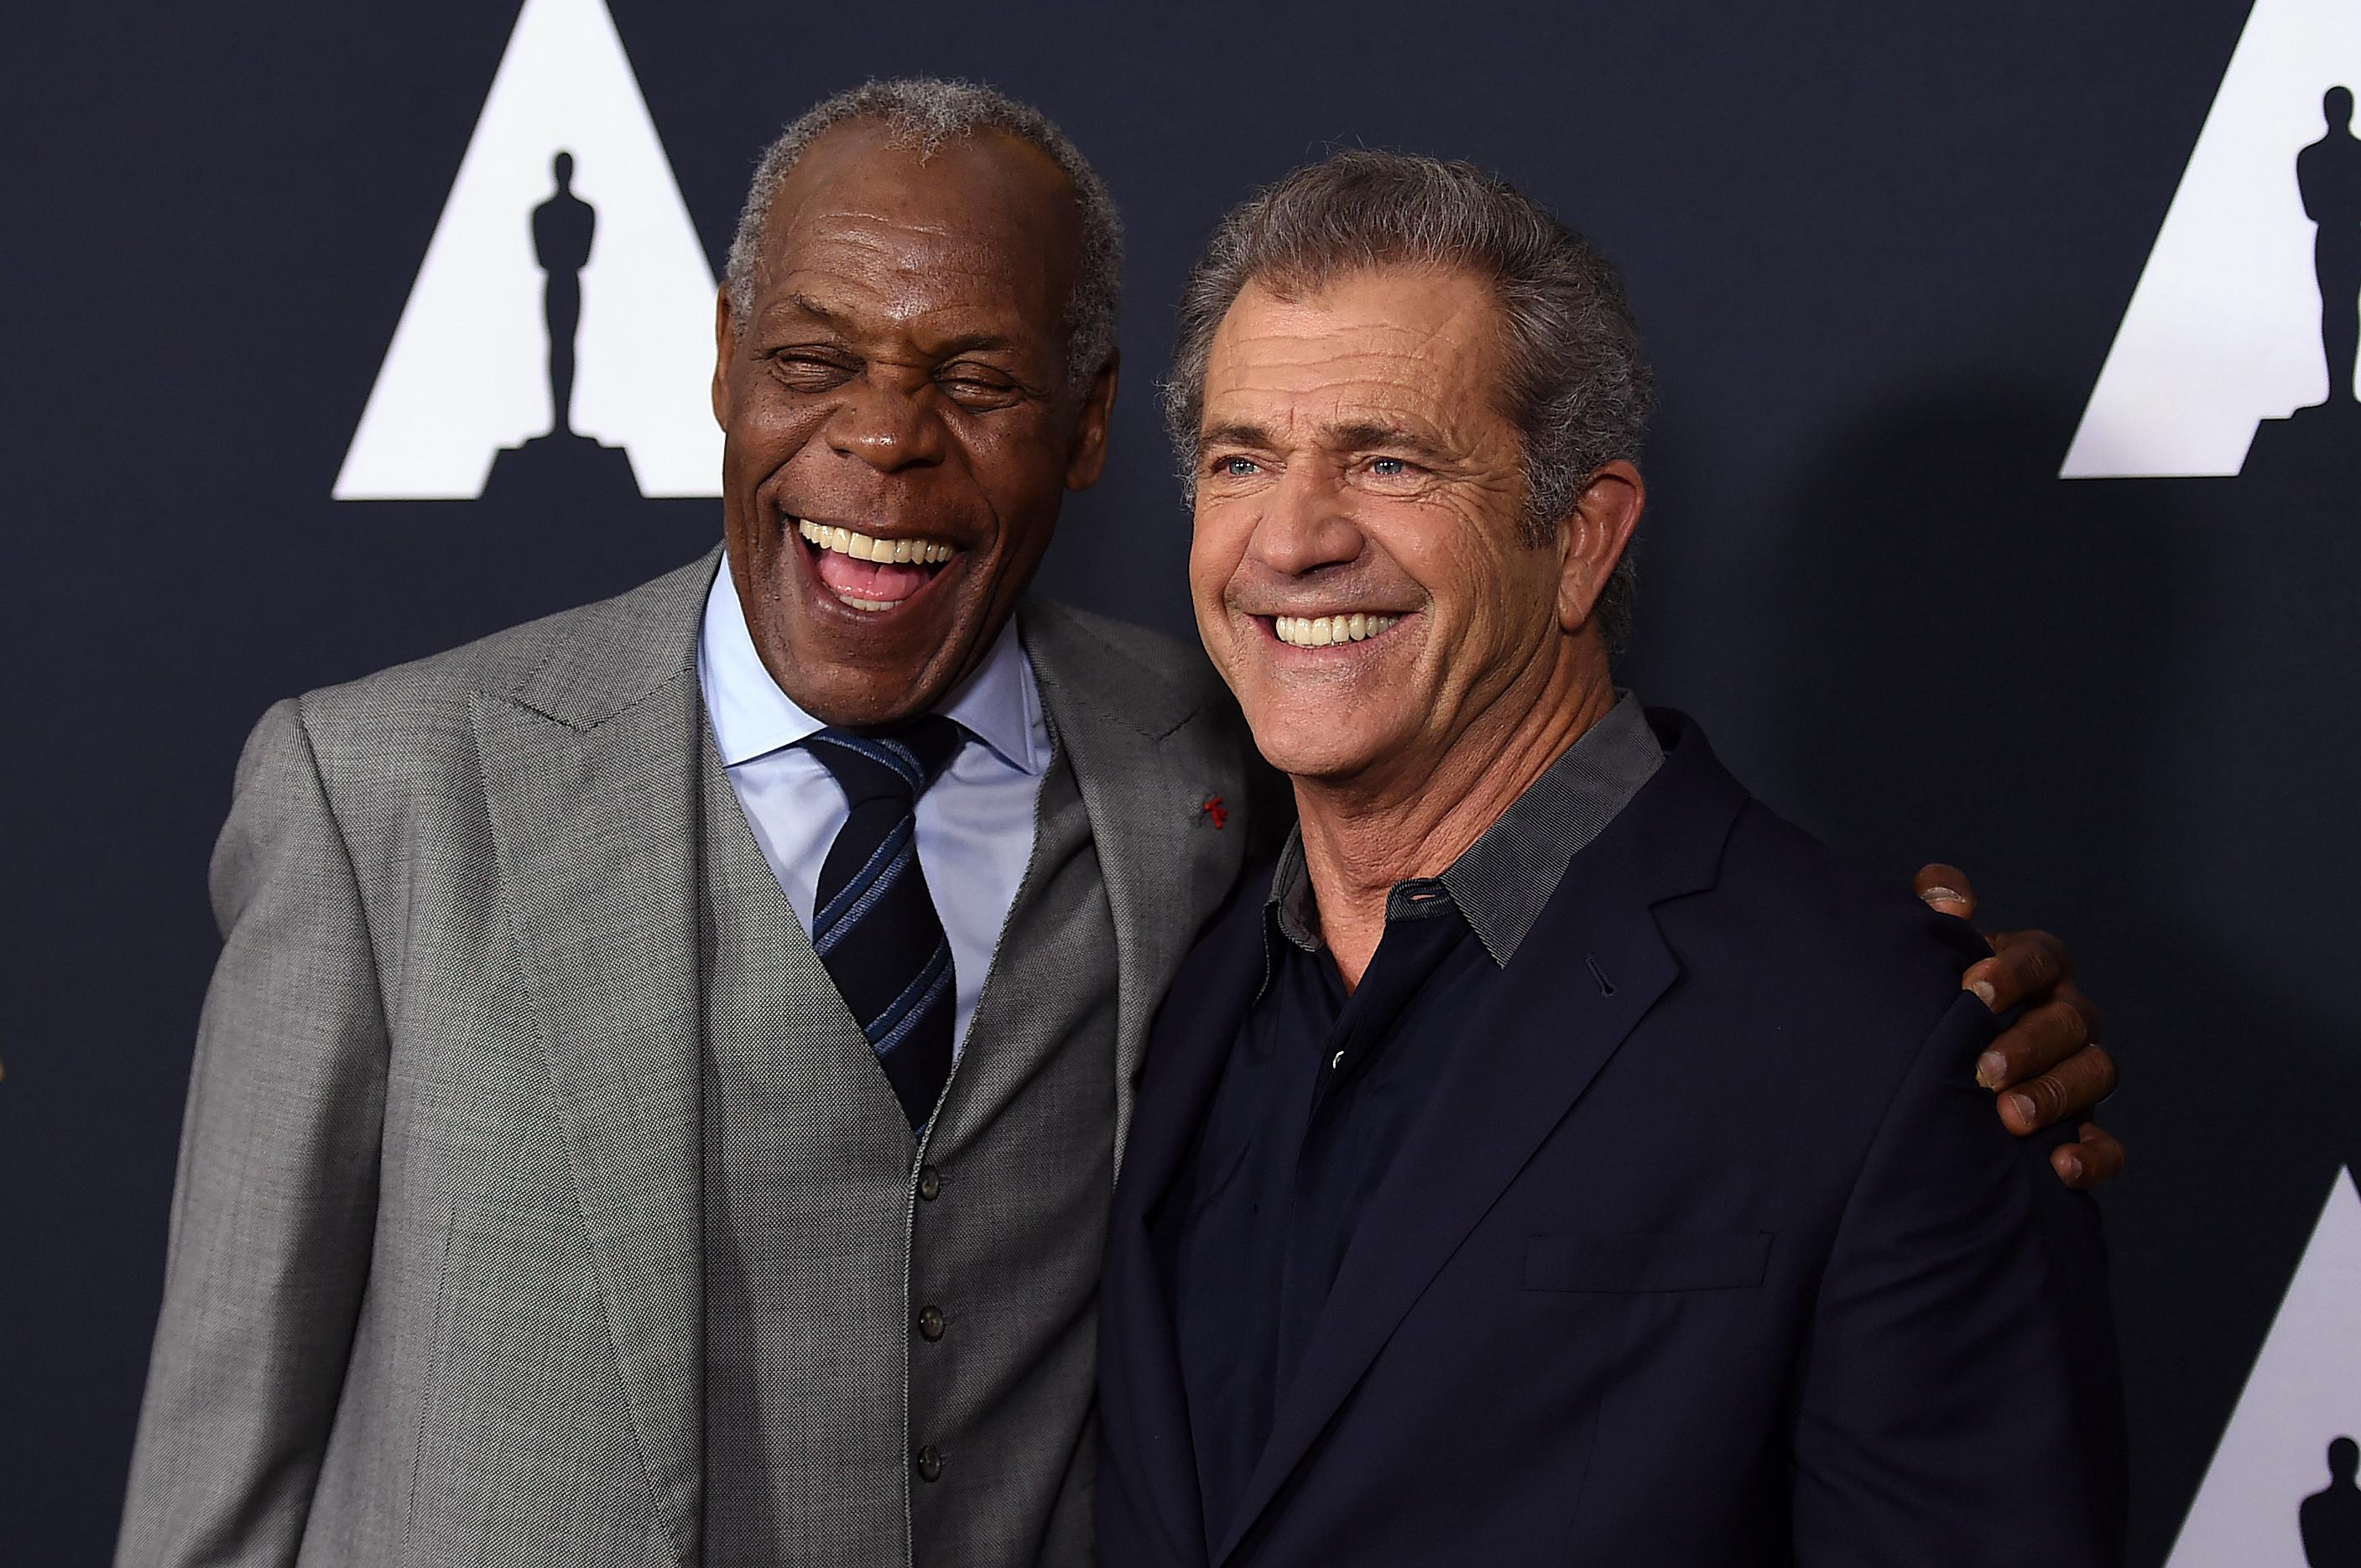 Danny Glover and Mel Gibson arrive at the Richard Donner Tribute on Wednesday, June 7, 2017 in Beverly Hills, Calif. (Photo by Jordan Strauss/Invision/AP)